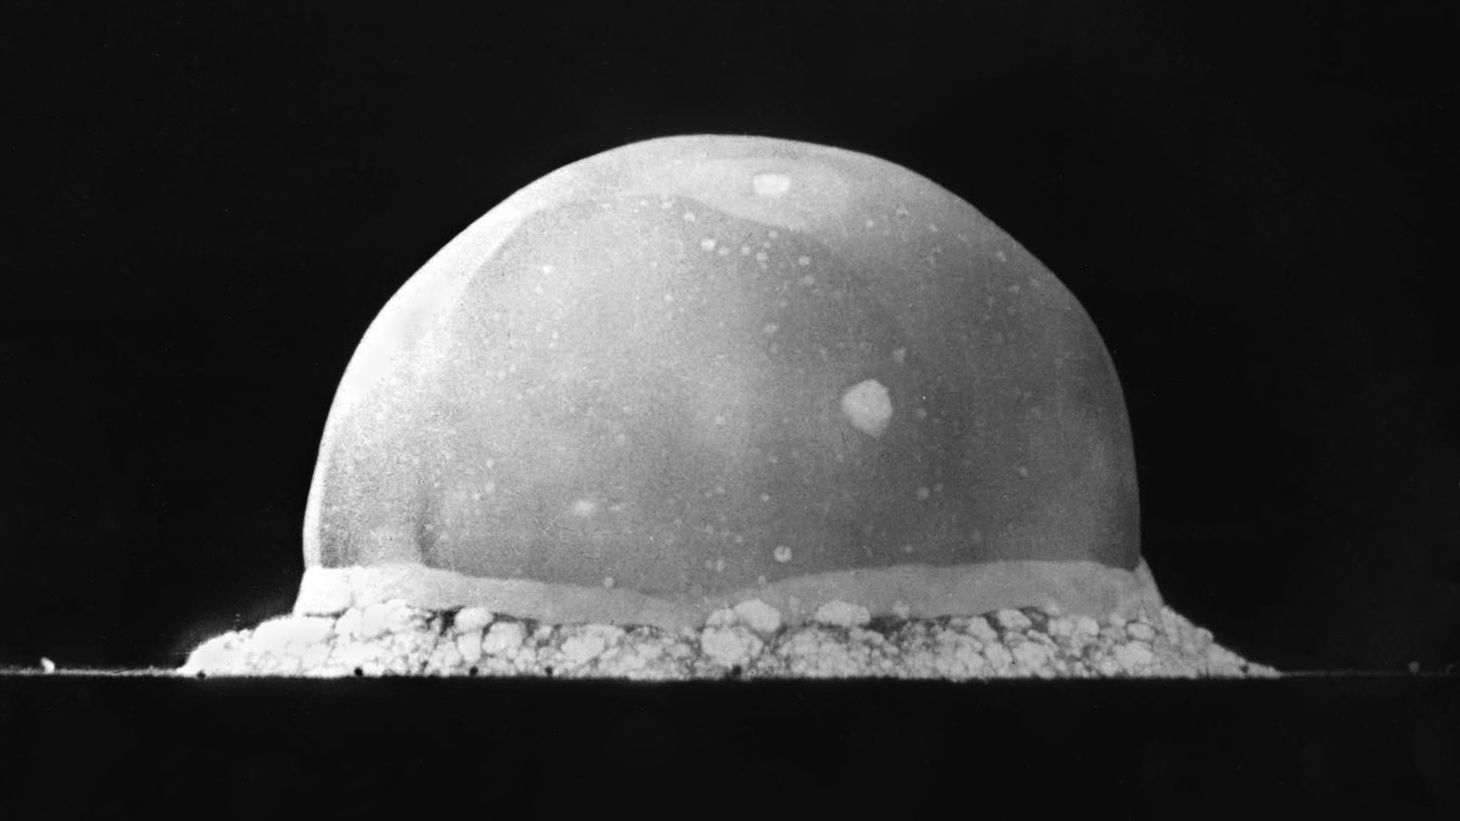 July 16, 2020 marks the anniversary of the detonation of the first ever nuclear bomb. On July 16, 1945, the 'Trinity' nuclear test plunged humanity into the so-called Atomic Age. The first-ever nuclear bomb was detonated in New Mexico, at the Alamogordo Test Range. The plutonium-based implosion-type device yielded 19 kilotons, creating a crater over 300 metres wide. Three weeks after the test, on August 6 and 9, 1945, nuclear bombs — one of them based on the Trinity design — were dropped on the Japanese cities of Hiroshima and Nagasaki, killing tens of thousands civilians immediately and many more from radiation exposure later. Picture shows Trinity milliseconds after the explosion.